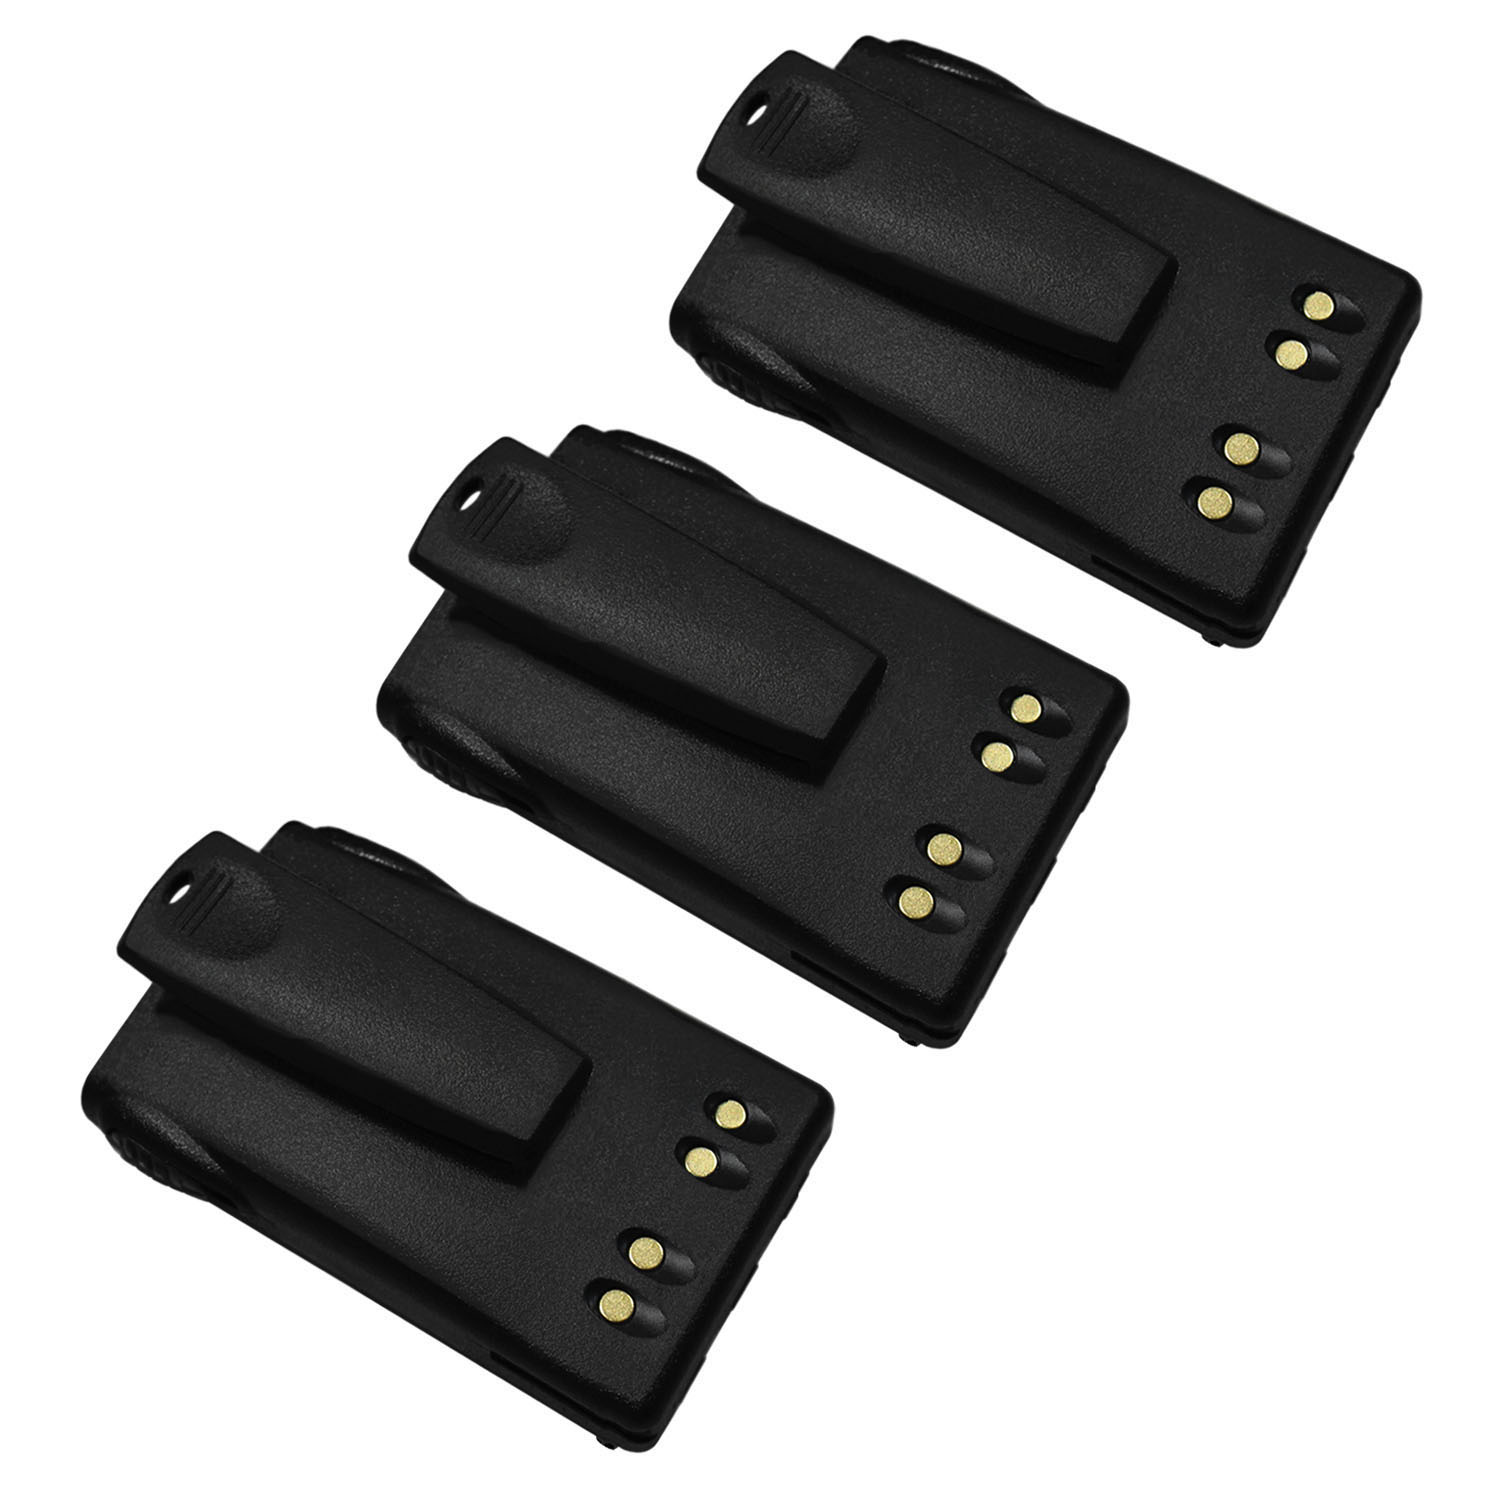 JMNN4023 Replacement Battery with CLIP for Motorola EX560 XLS - 3 Pack